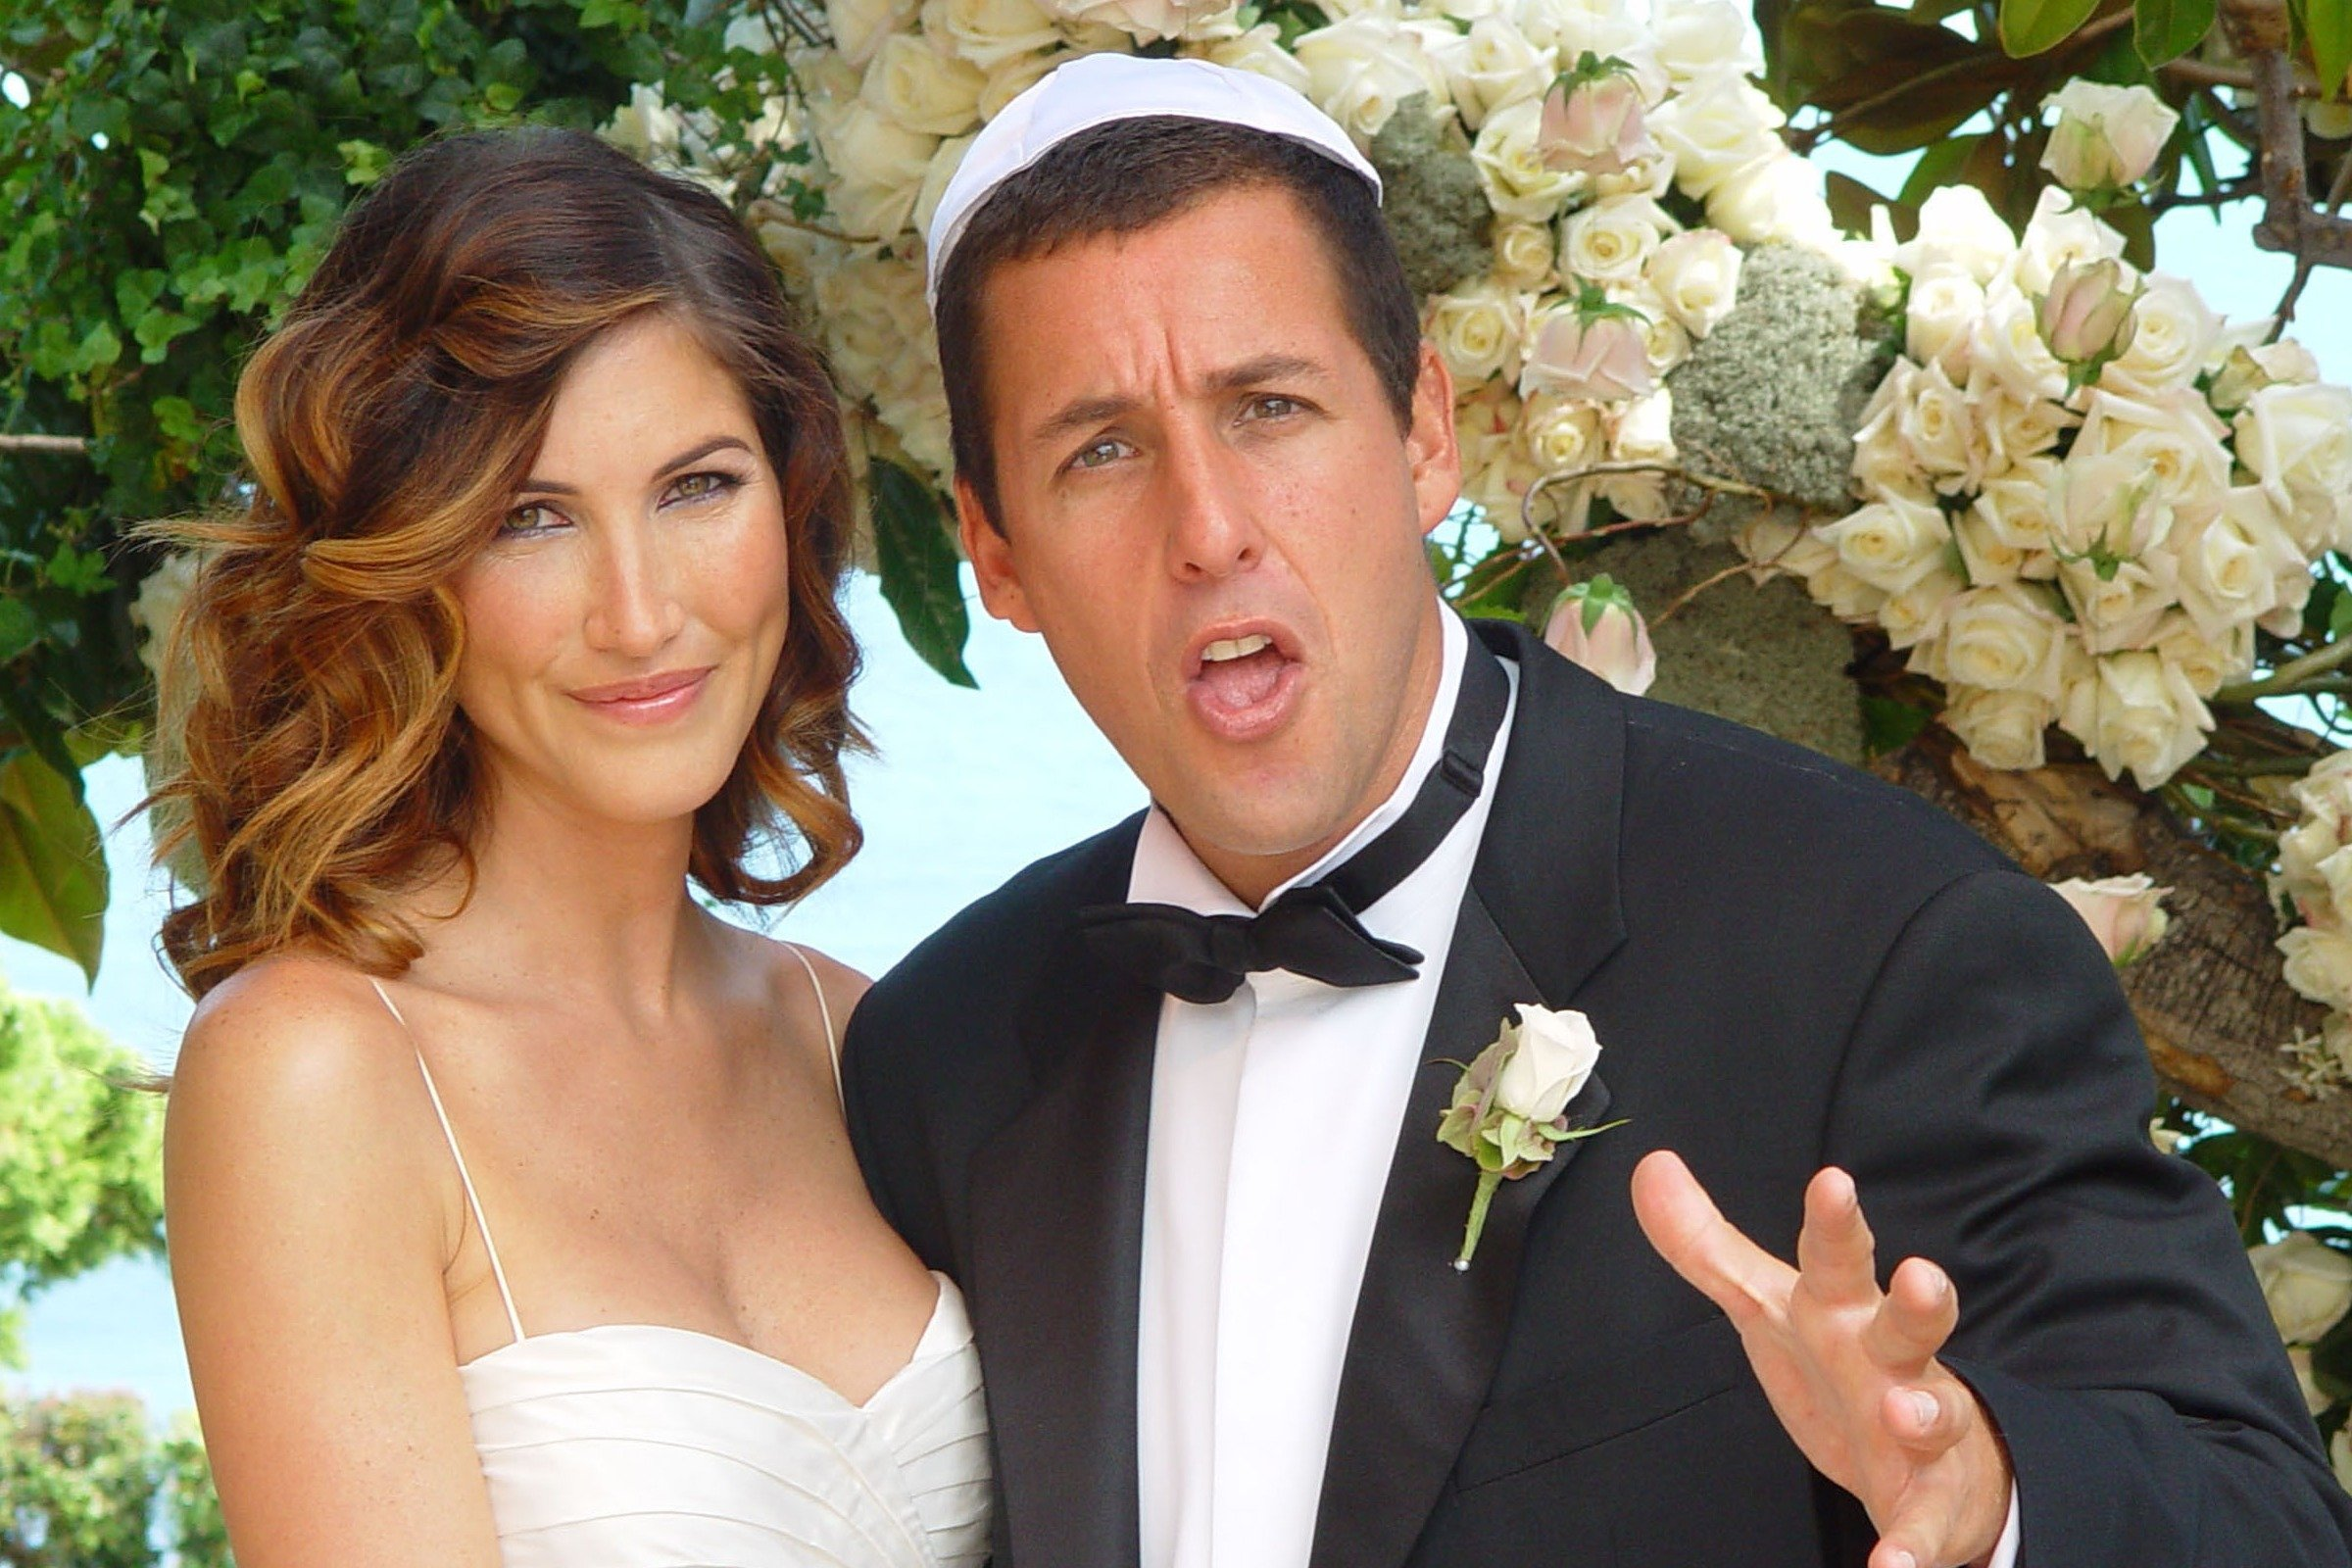 Image Credit: Getty Images/Nick Gossen Courtesy of AdamSandler.com | Photo from Sandler's wedding